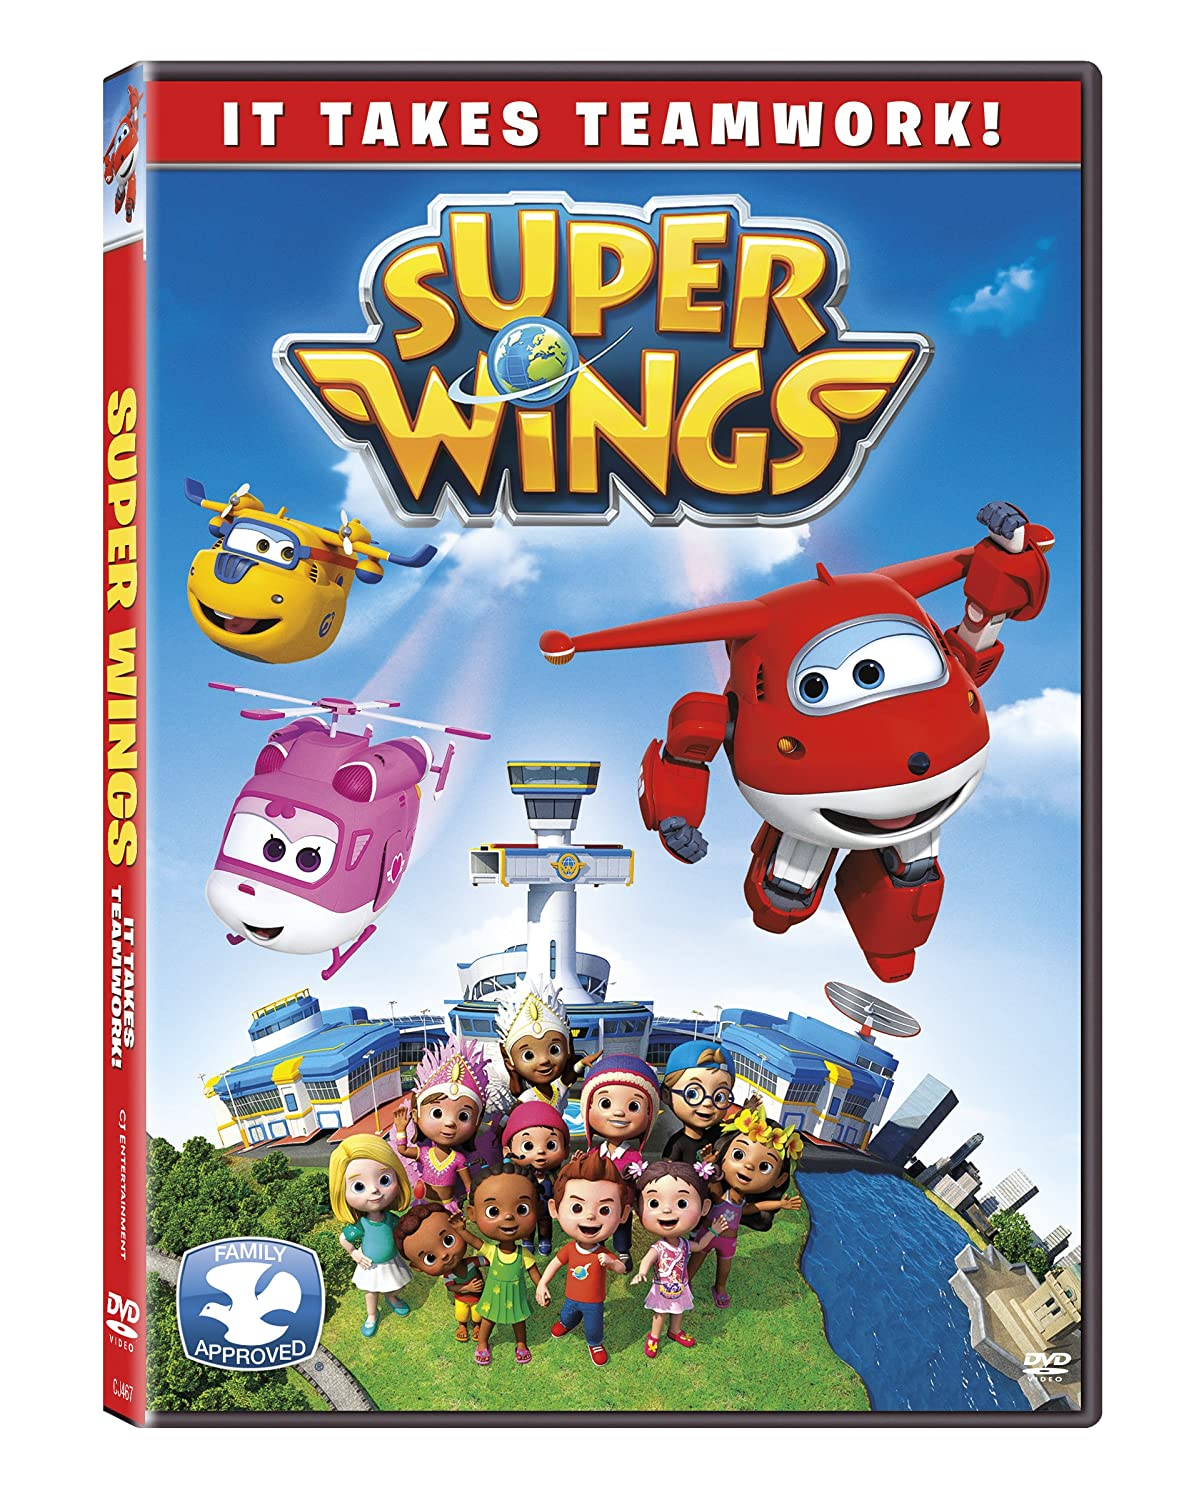 Super Wings: It Takes Teamwork Luca Padovan (Jett) eOne Kim Jin Yong Cookie Jar Entertainment